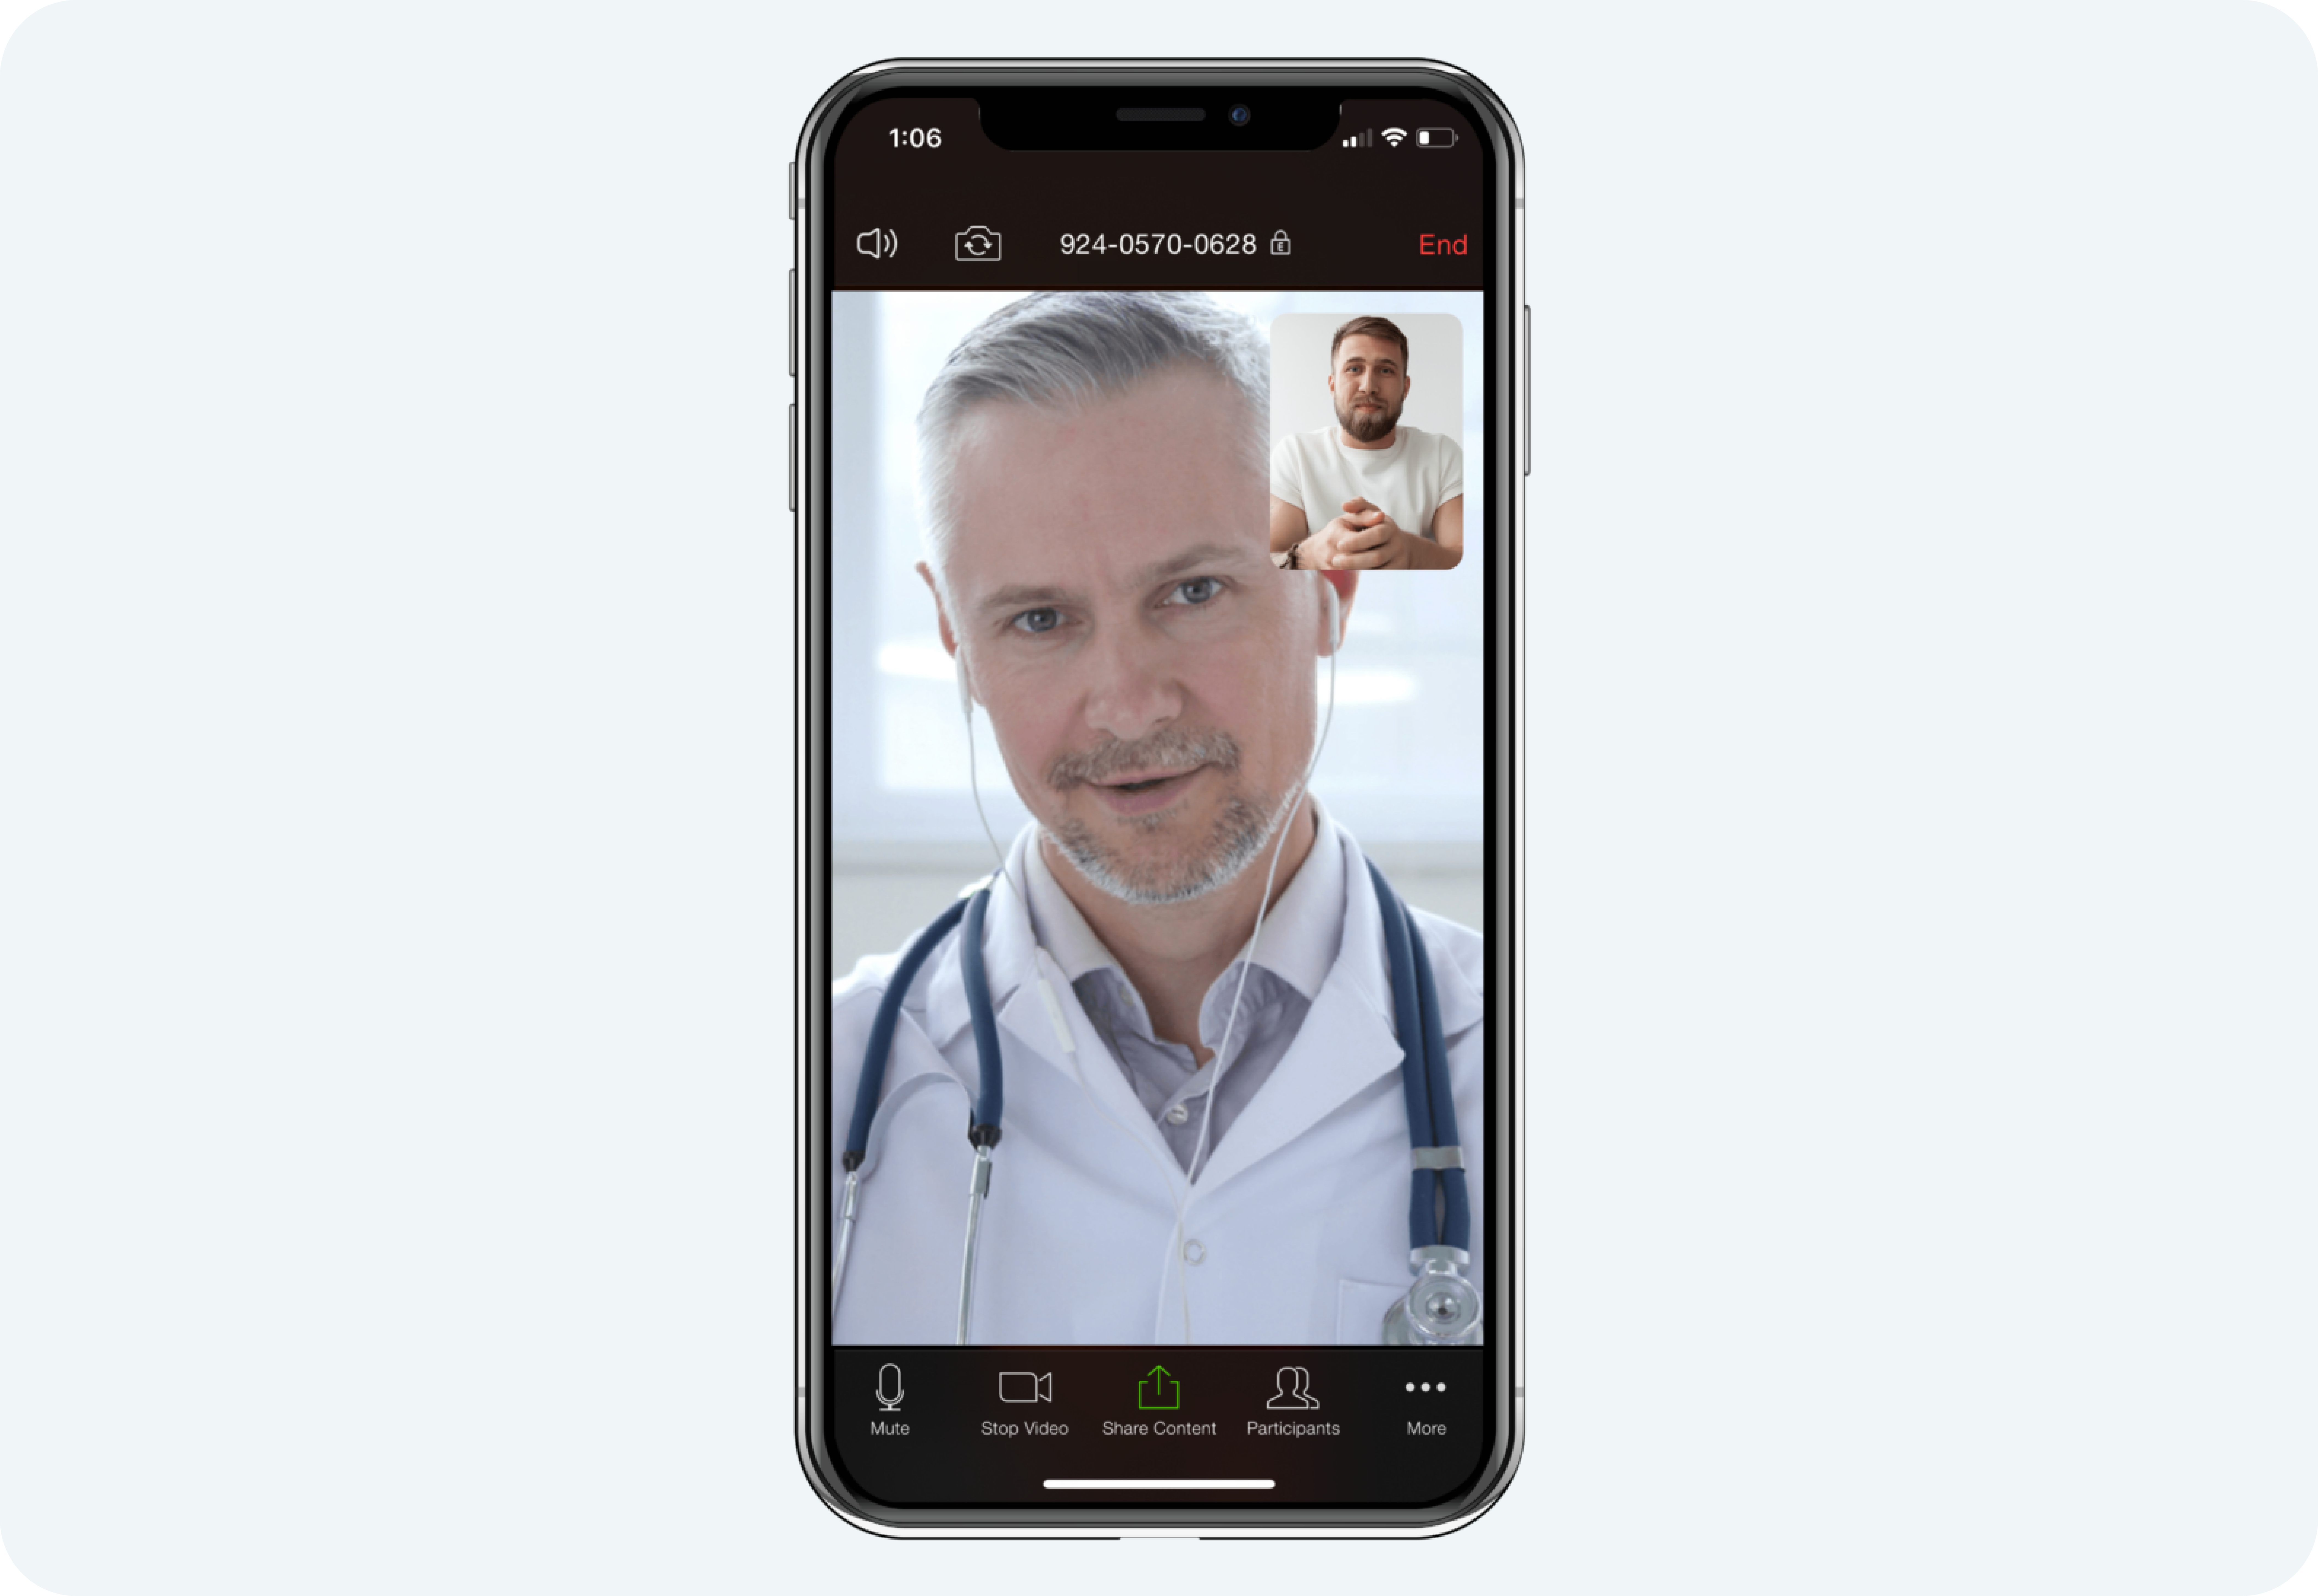 Doctor and patient telehealth visit via Zoom